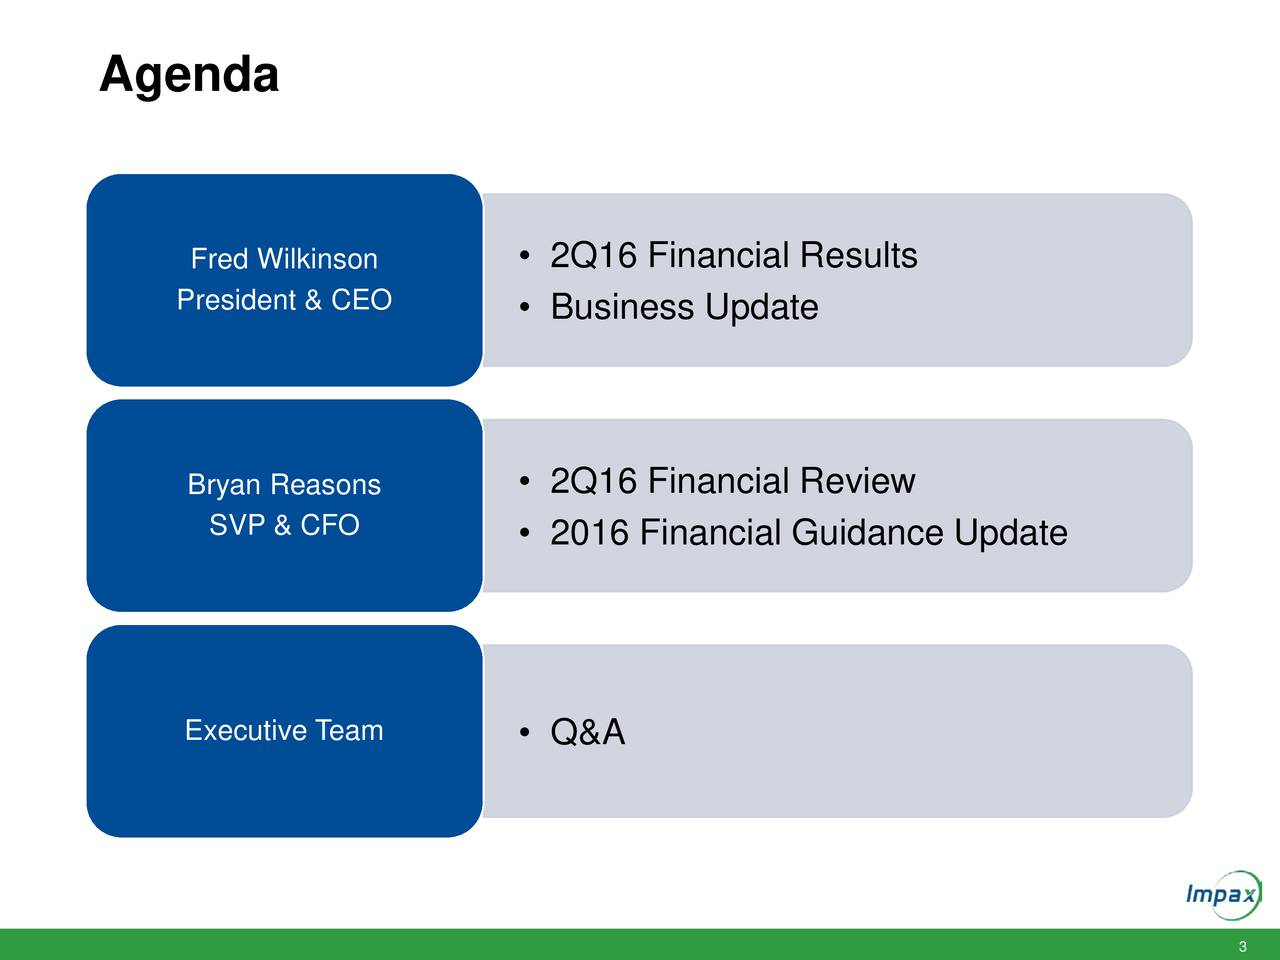 Fred Wilkinson  2Q16 Financial Results President & CEO  Business Update Bryan Reasons  2Q16 Financial Review SVP & CFO  2016 Financial Guidance Update Executive Team  Q&A